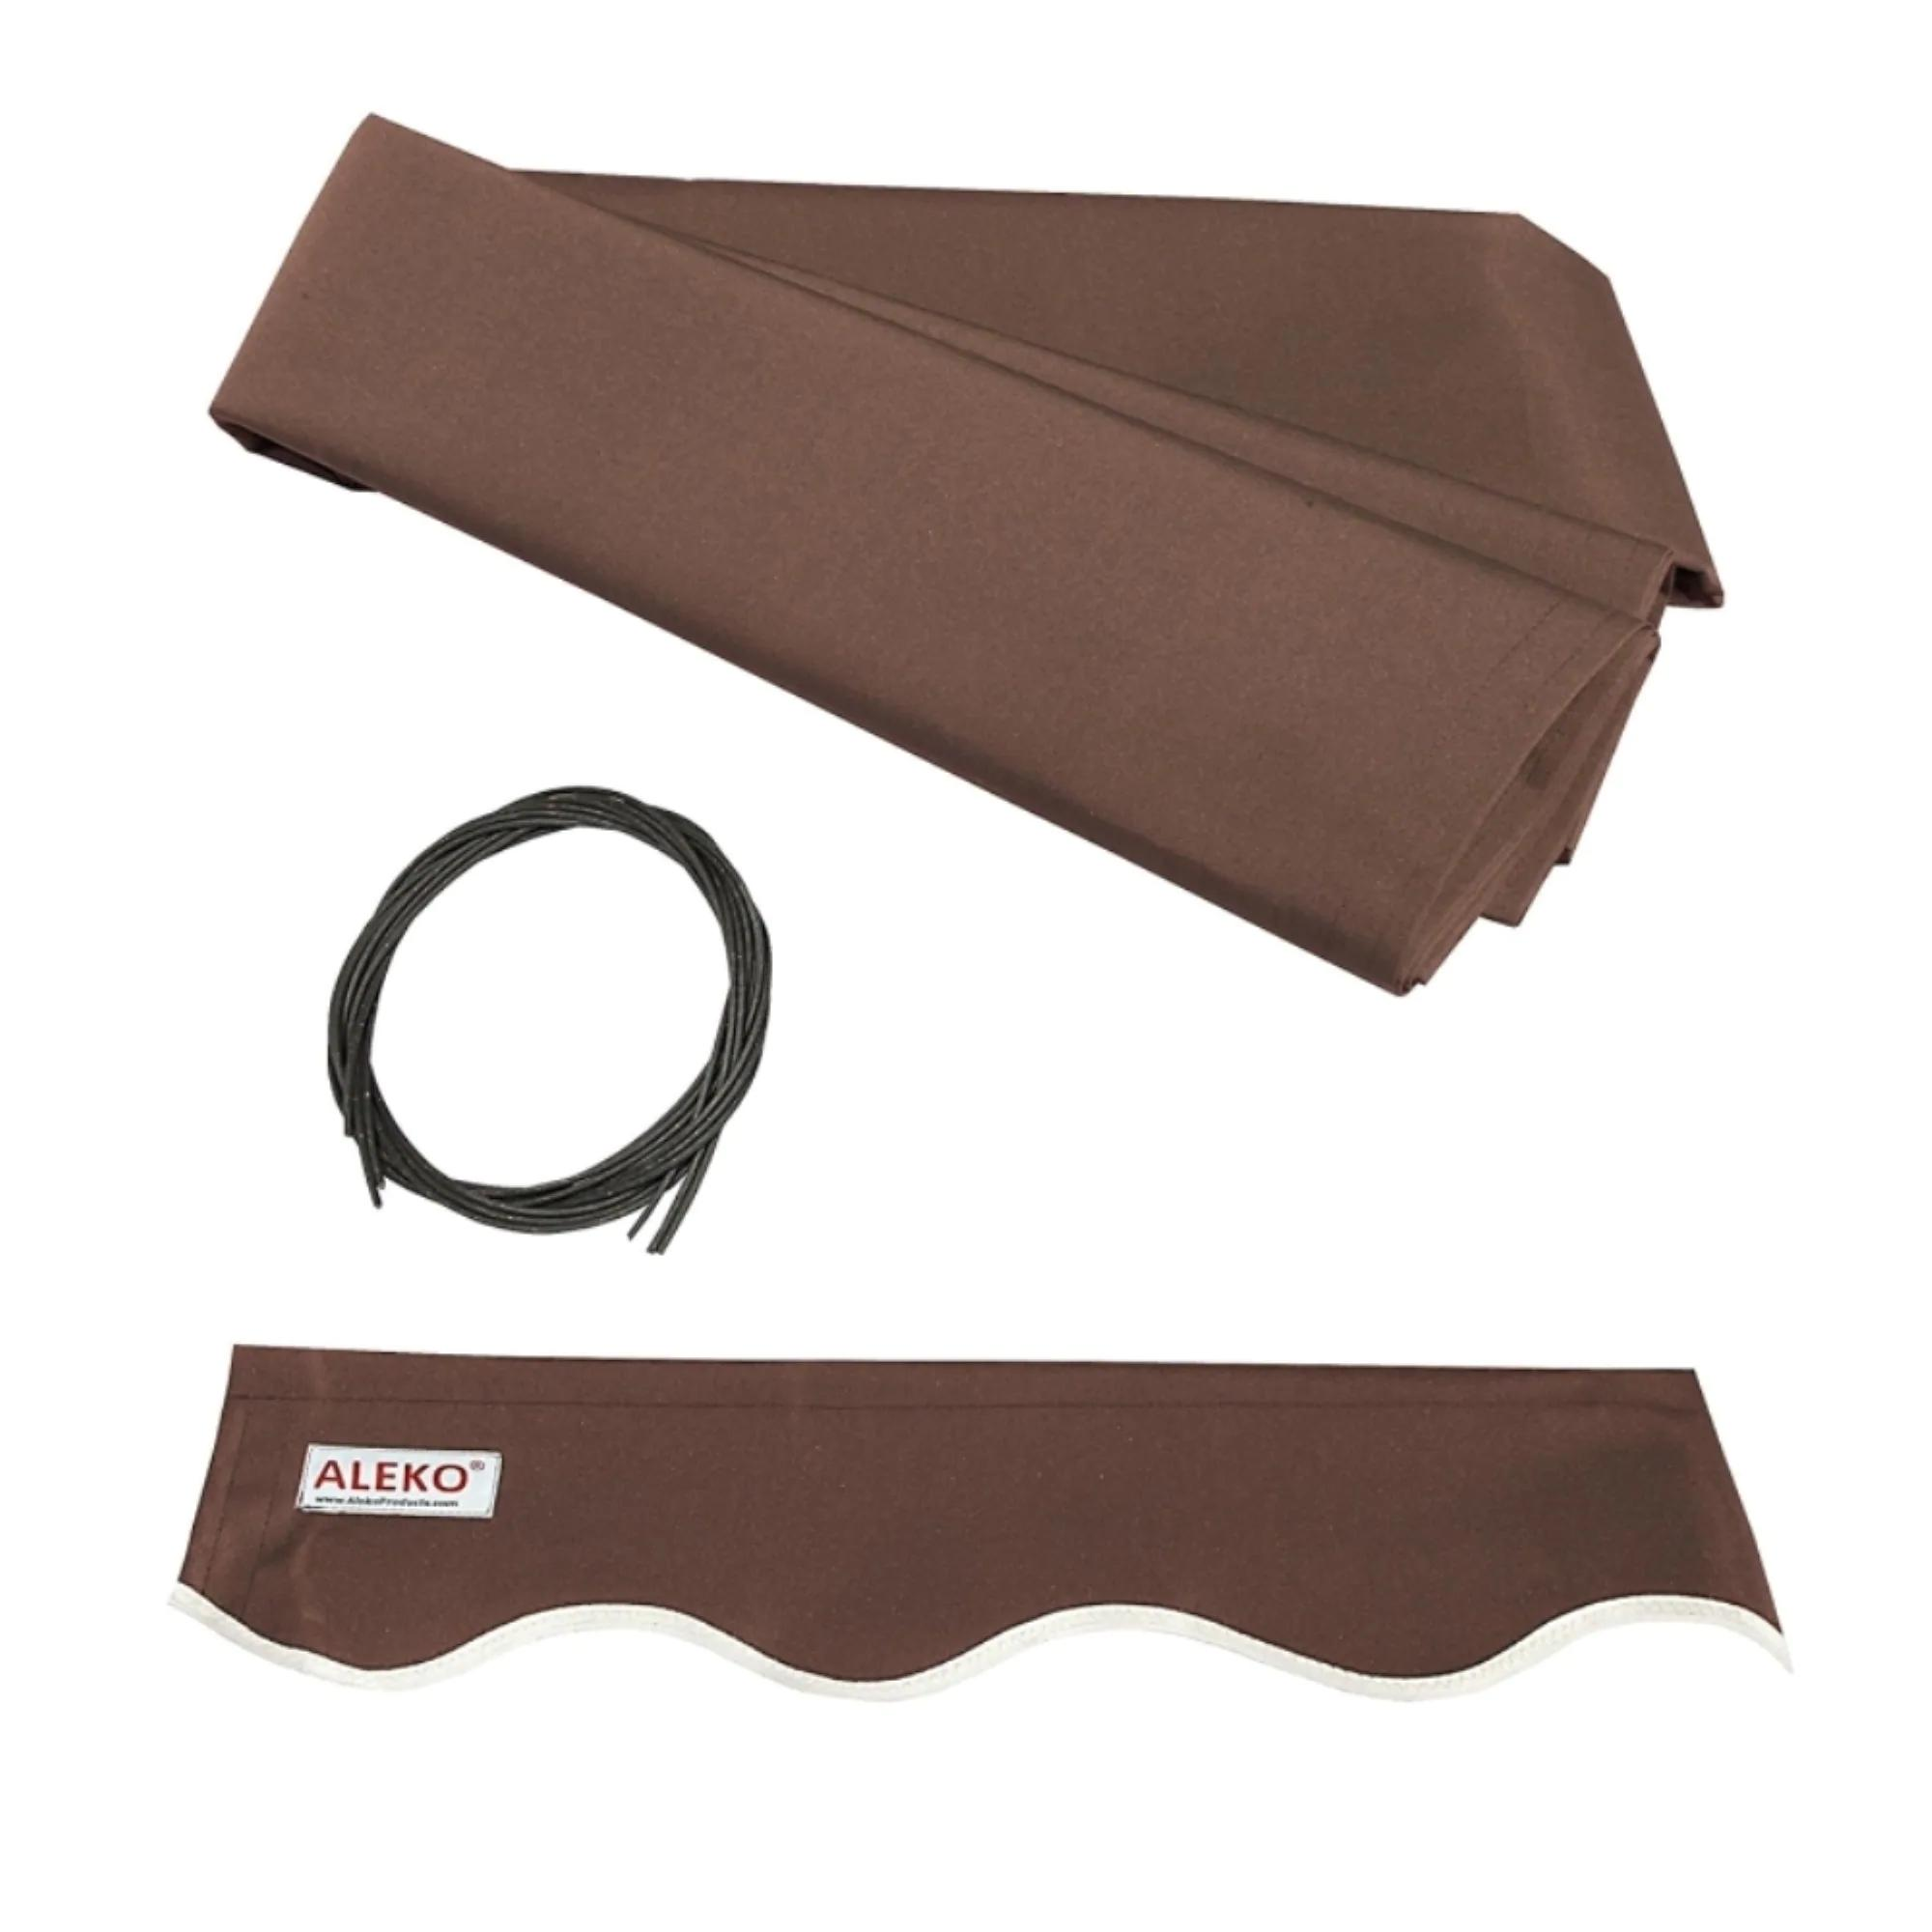 ALEKO Retractable 12 x 10 feet Awning Home Patio Canopy Brown